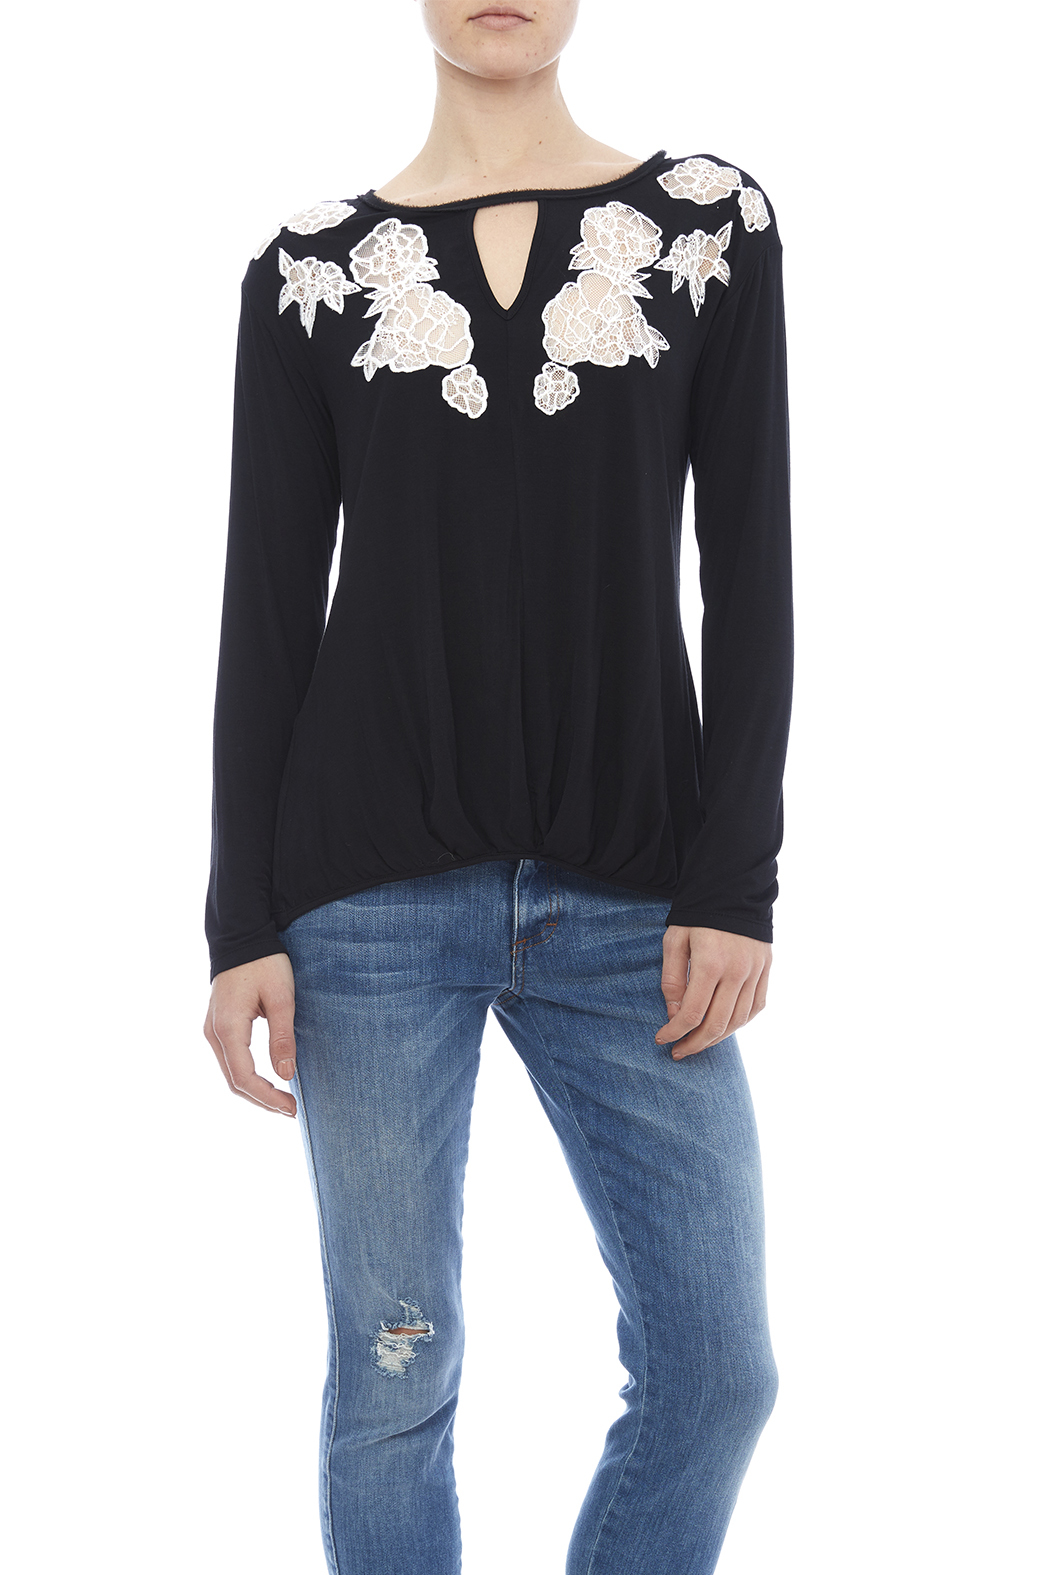 Ella Moss Lace Inset Top - Front Cropped Image